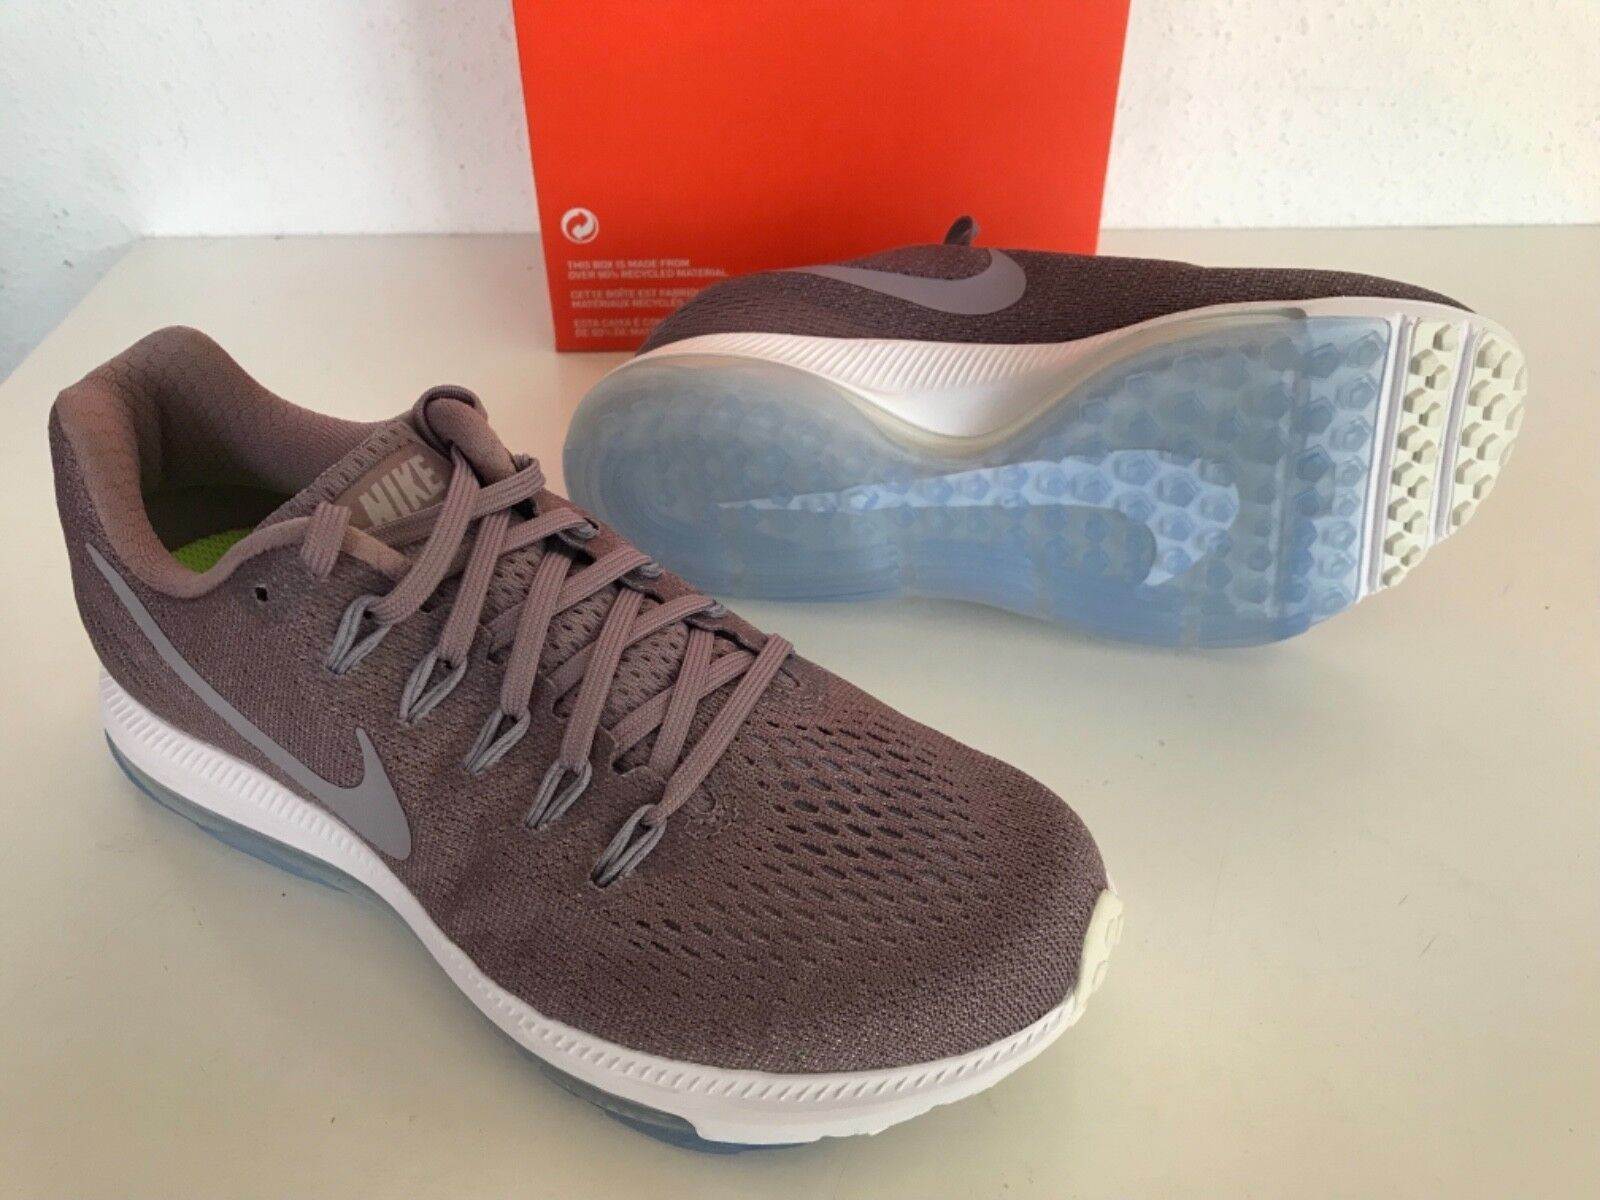 NEW femmes femmes NEW  NIKE ZOOM ALL OUT LOW US 6 EU 36.5 Running Trainers chaussures 878671-200 8b05d6